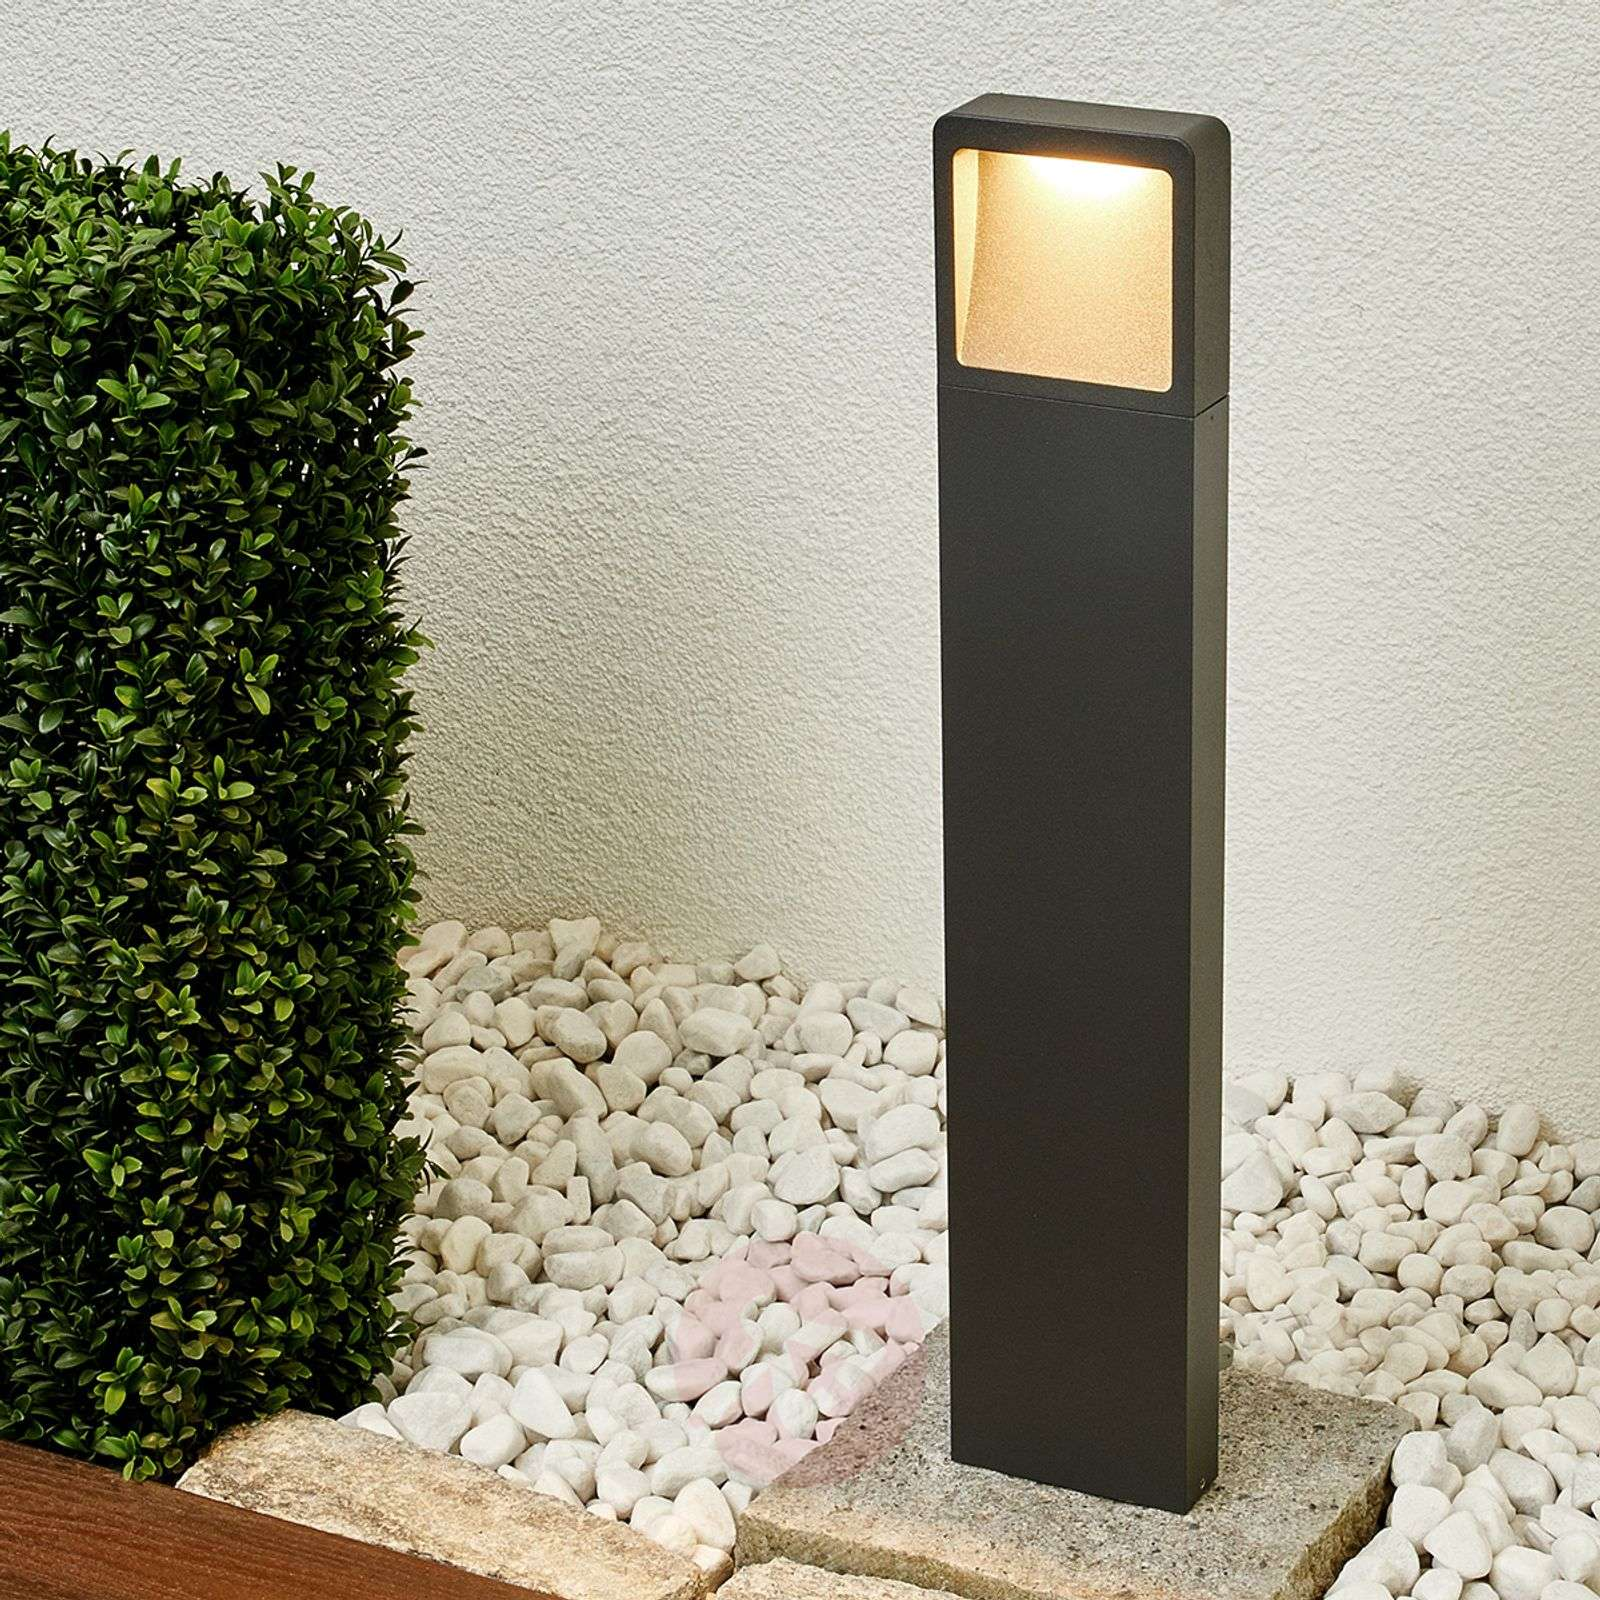 Leya - LED-weglamp met modern effect